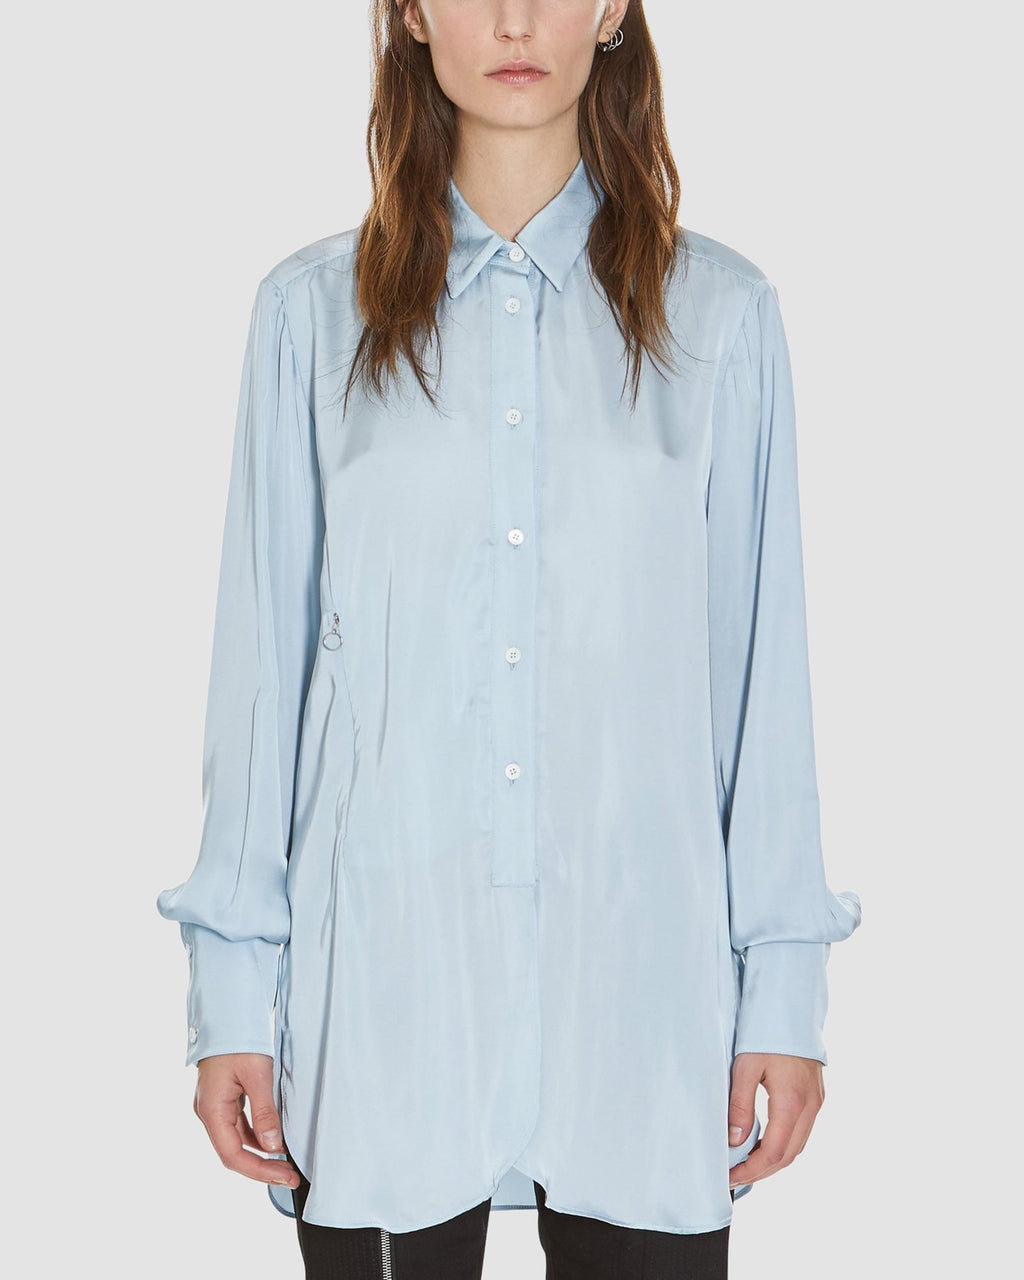 LEVY BUTTON UP